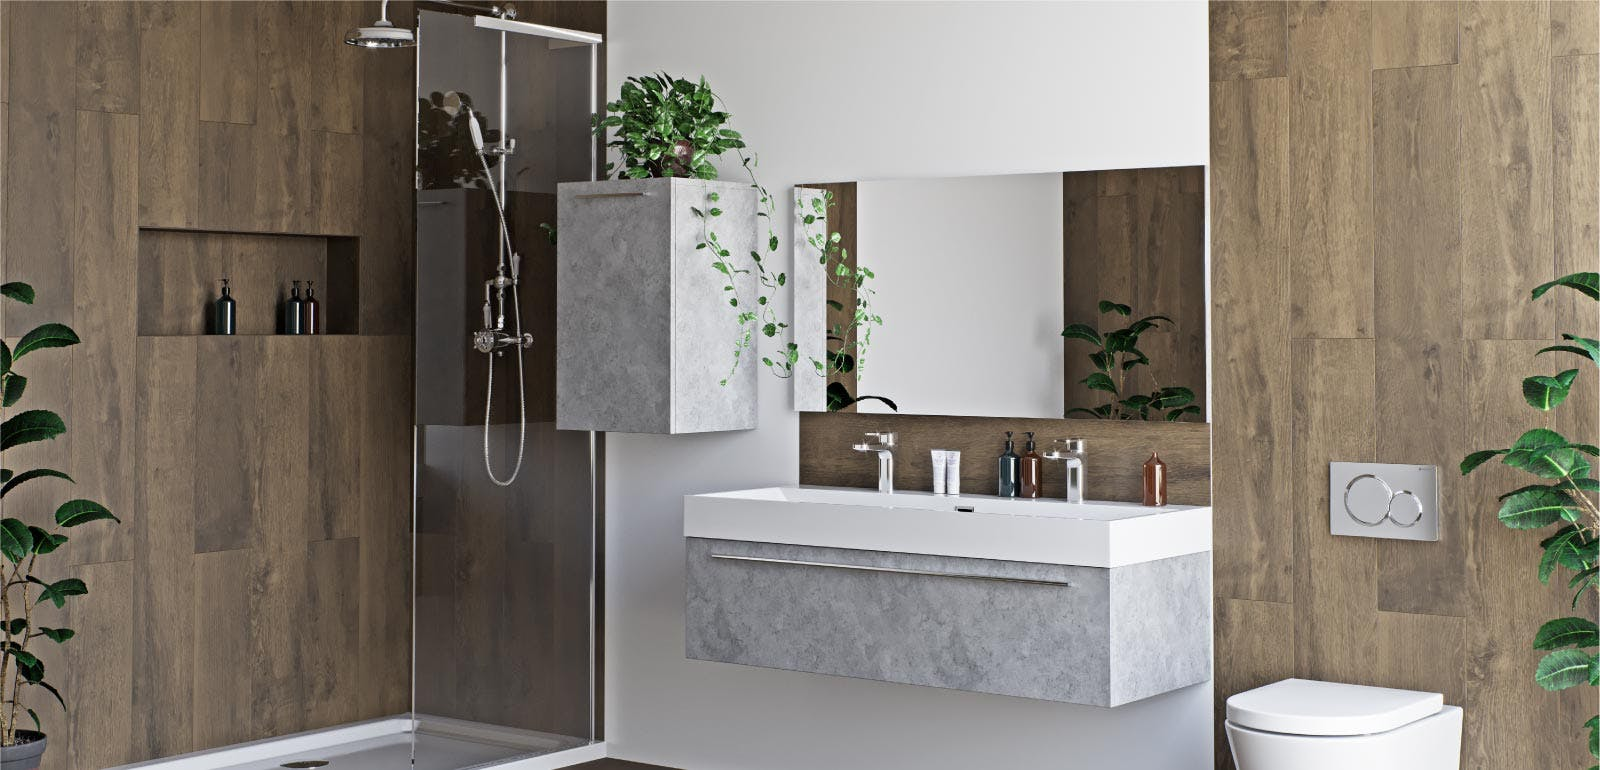 7 Contemporary Bathroom Ideas For 2020 And Beyond